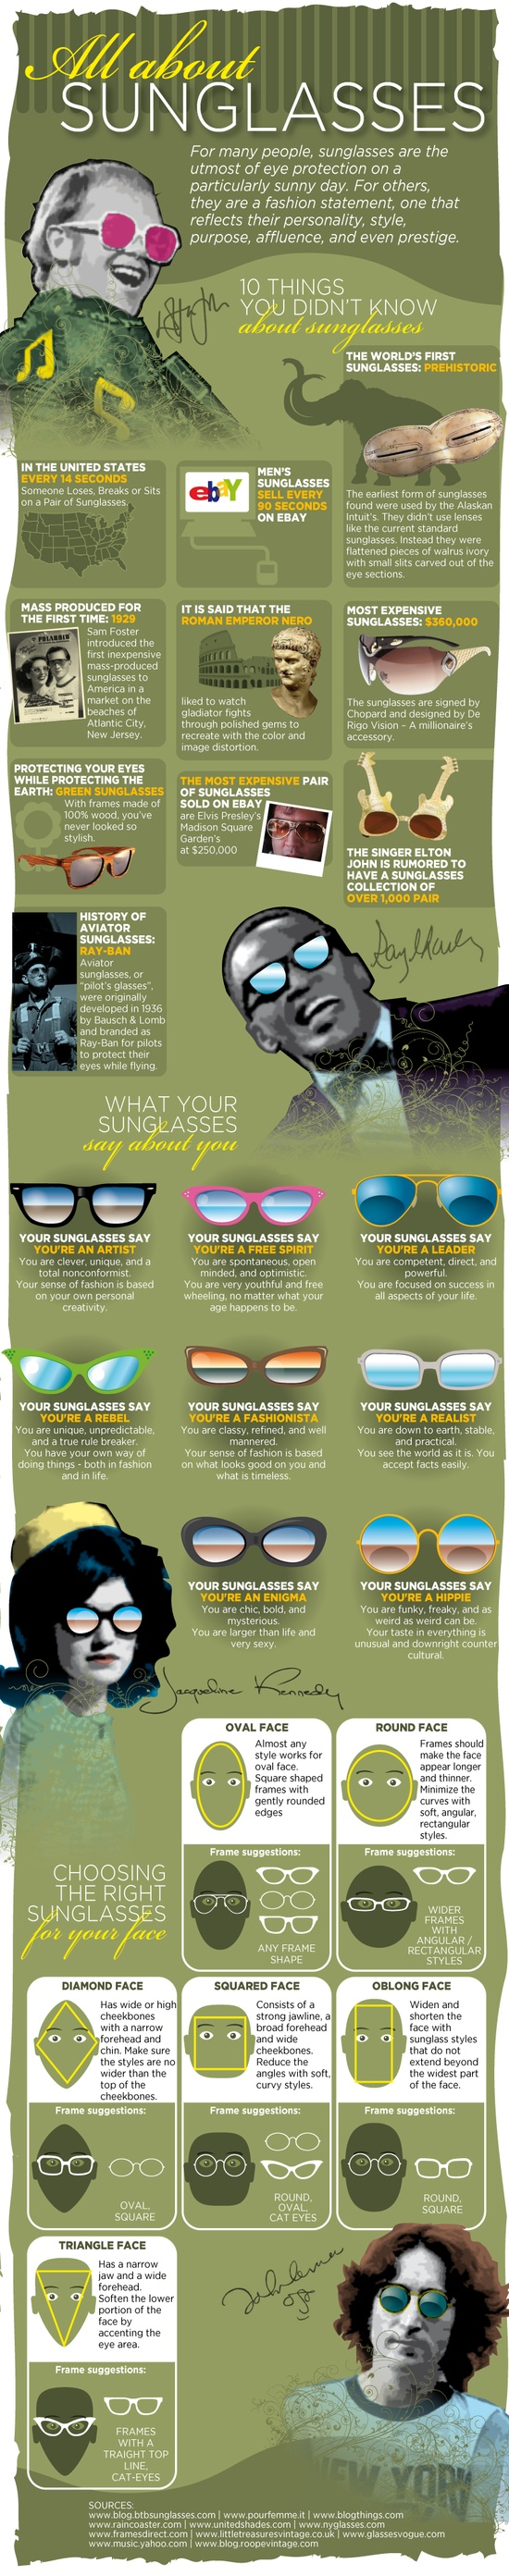 All-about-sunglasses